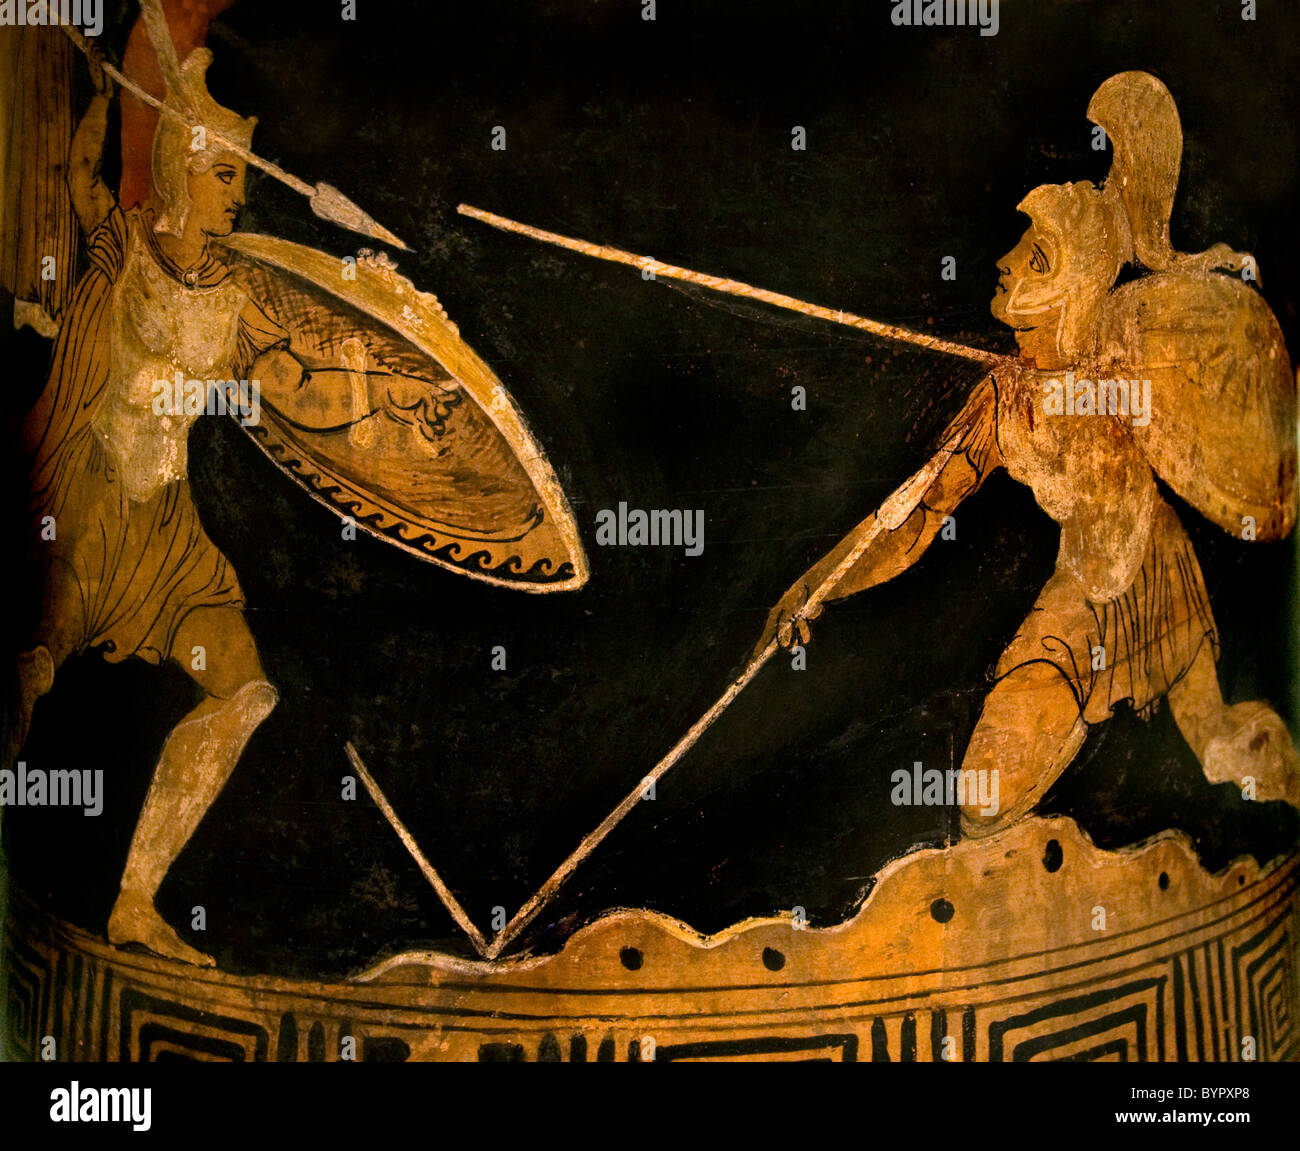 achilles and the trojan war Nestor himself, in harkening back to the trojan war, makes the following  appraisal of  odysseus remarks that even in the underworld achilles is a king ( xi.